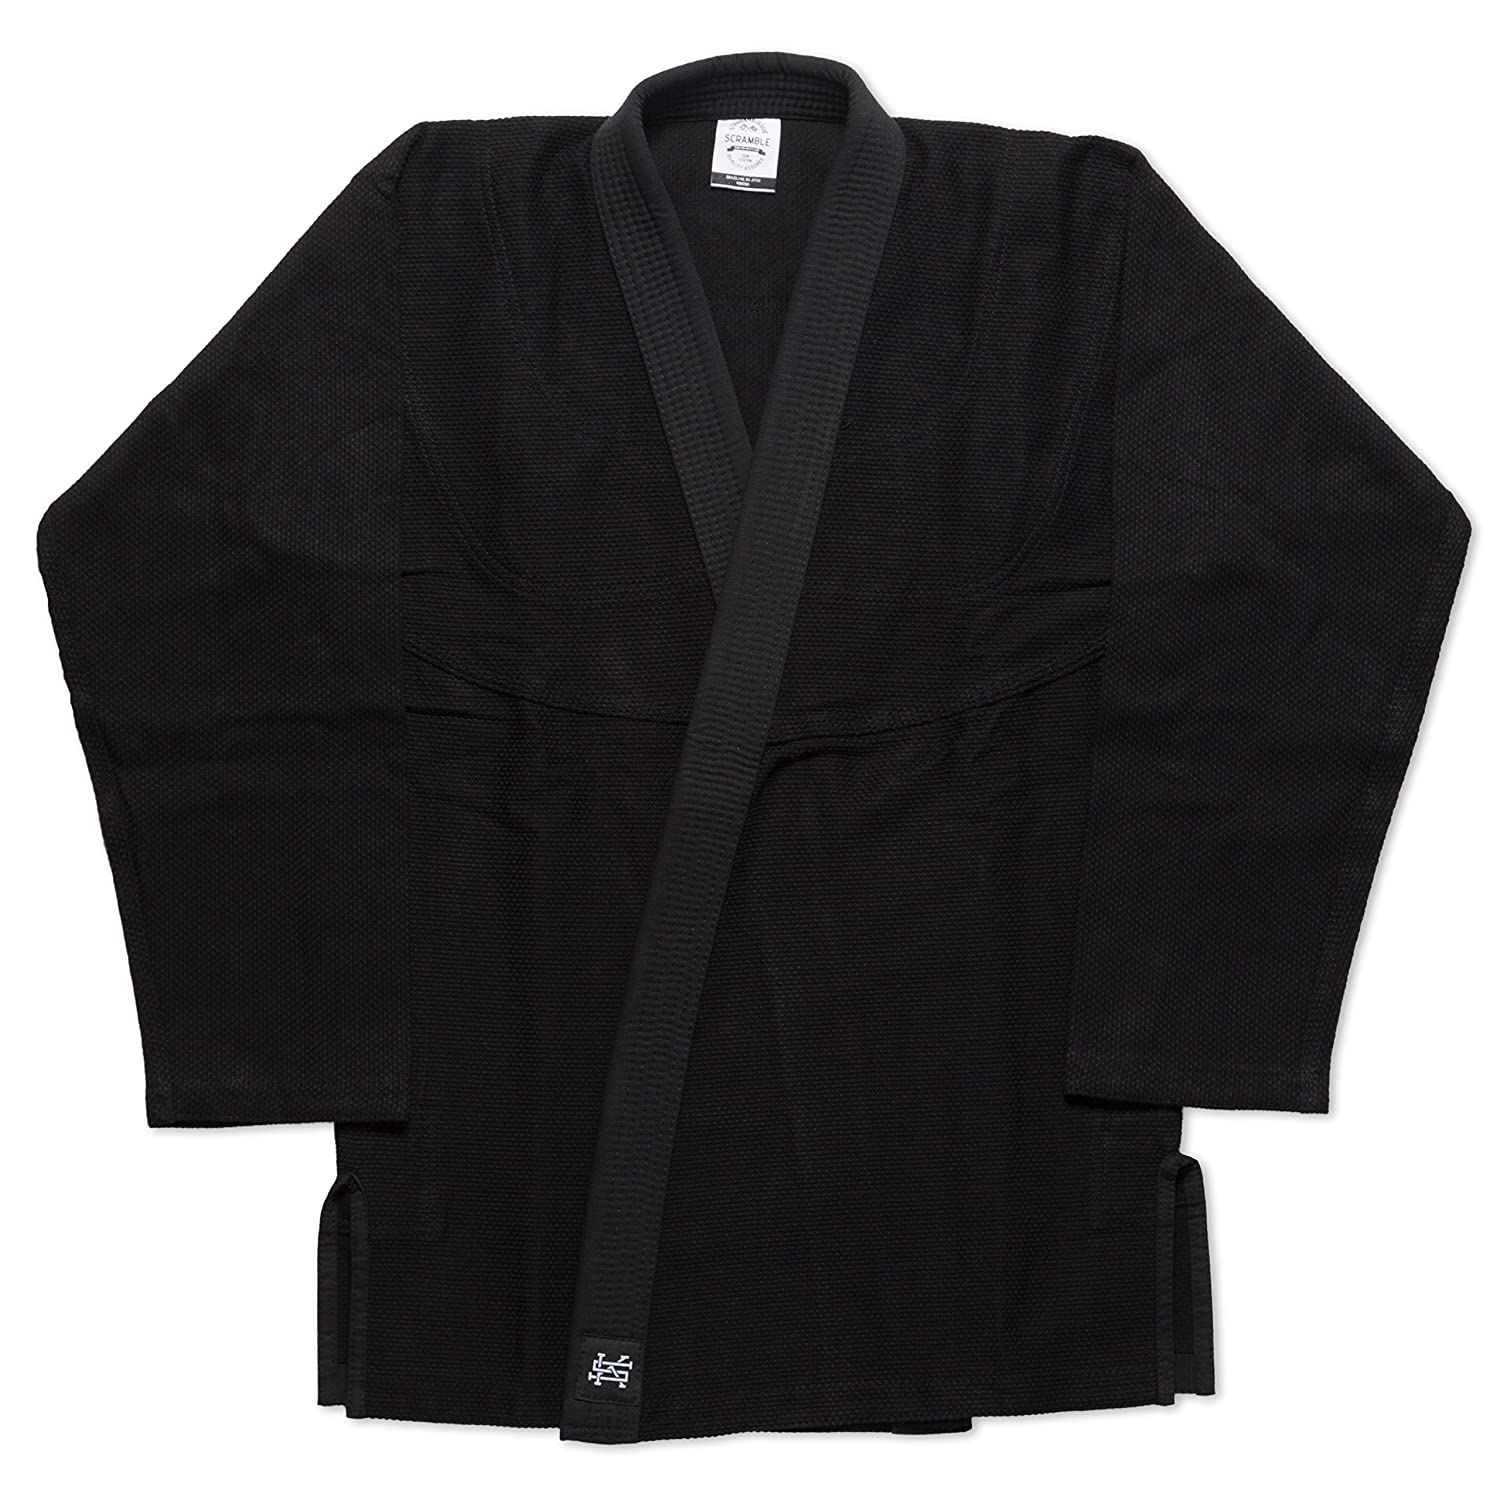 Scramble Standard Issue - Semi Custom Kimono - Black Edition